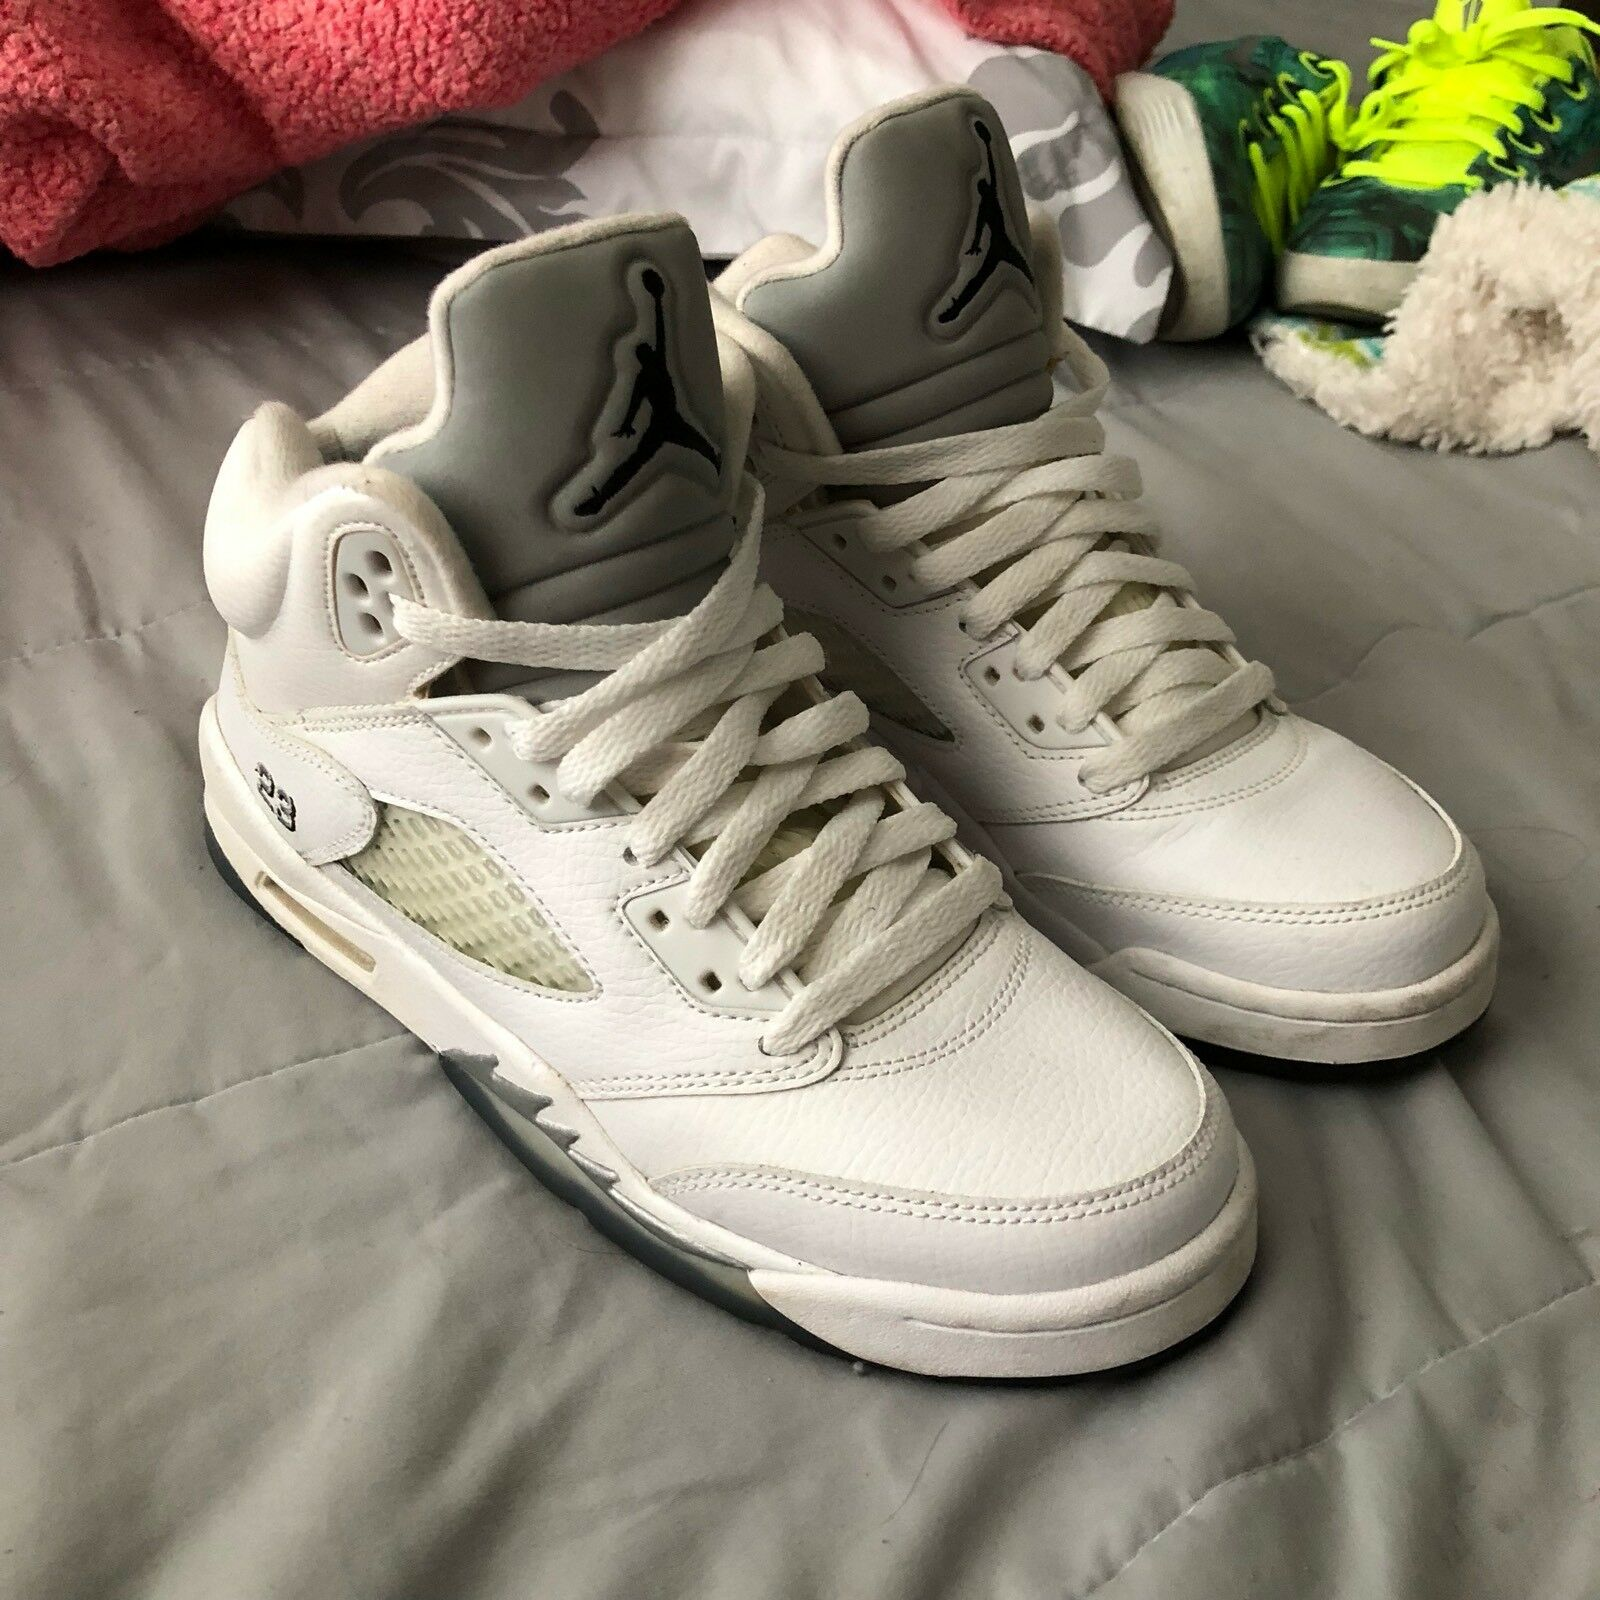 Nike Air Jordan 5 White Metallic Comfortable New shoes for men and women, limited time discount